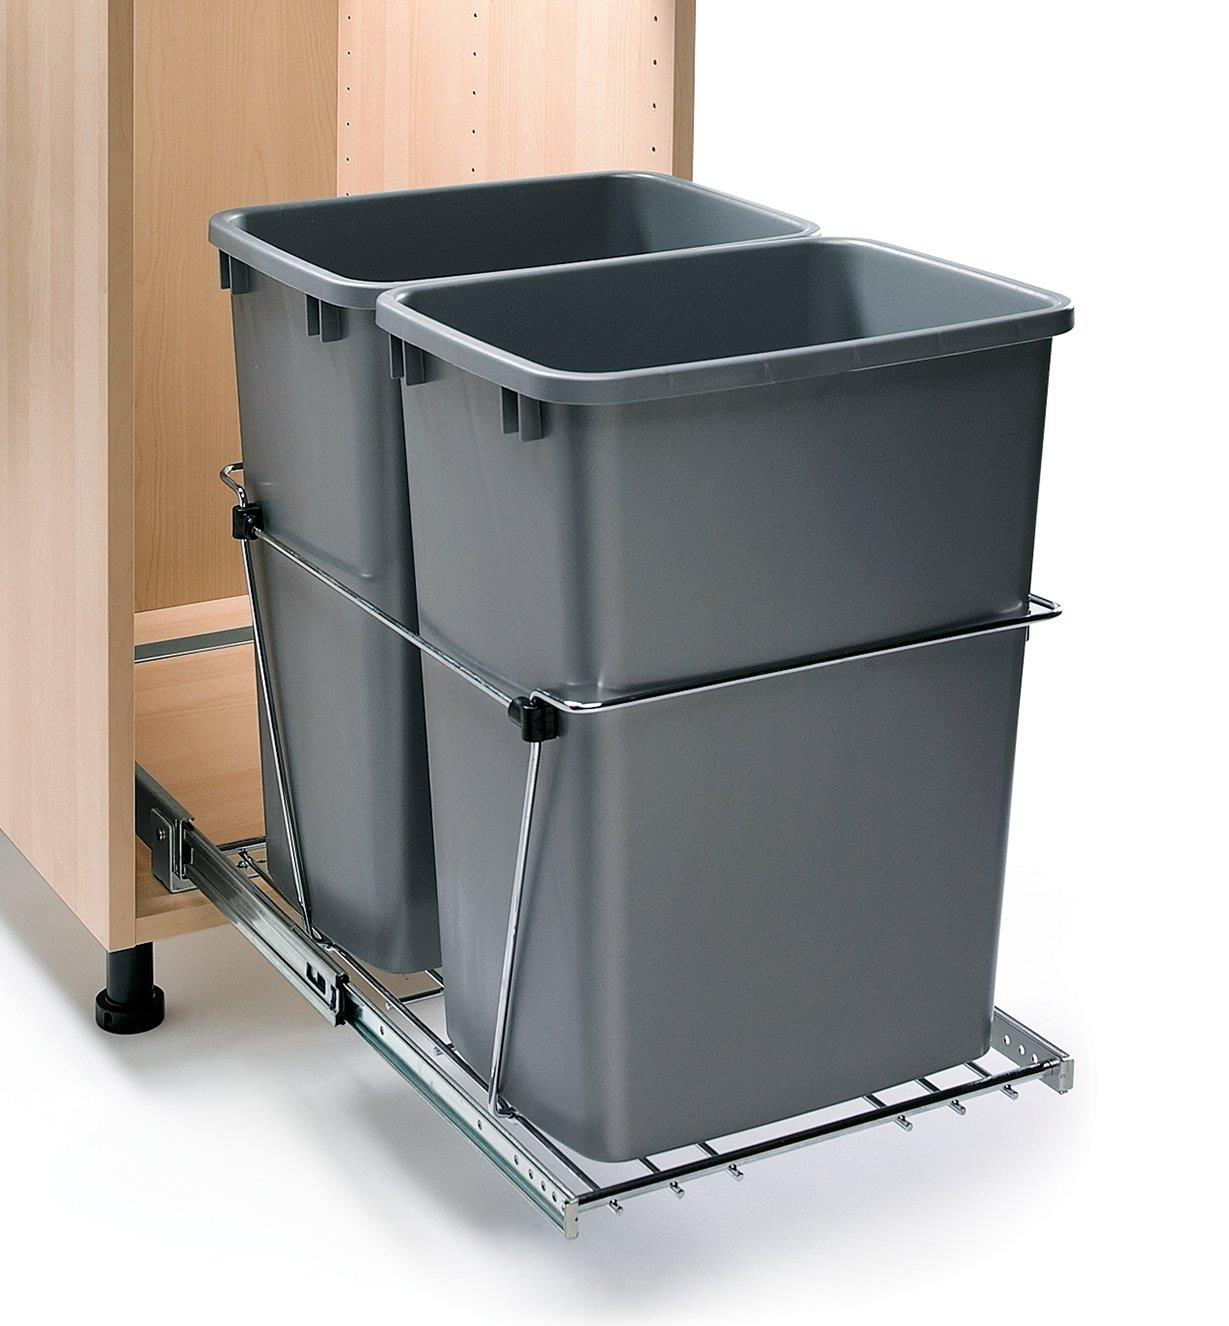 12K7760 - Waste-Container Kit, Double